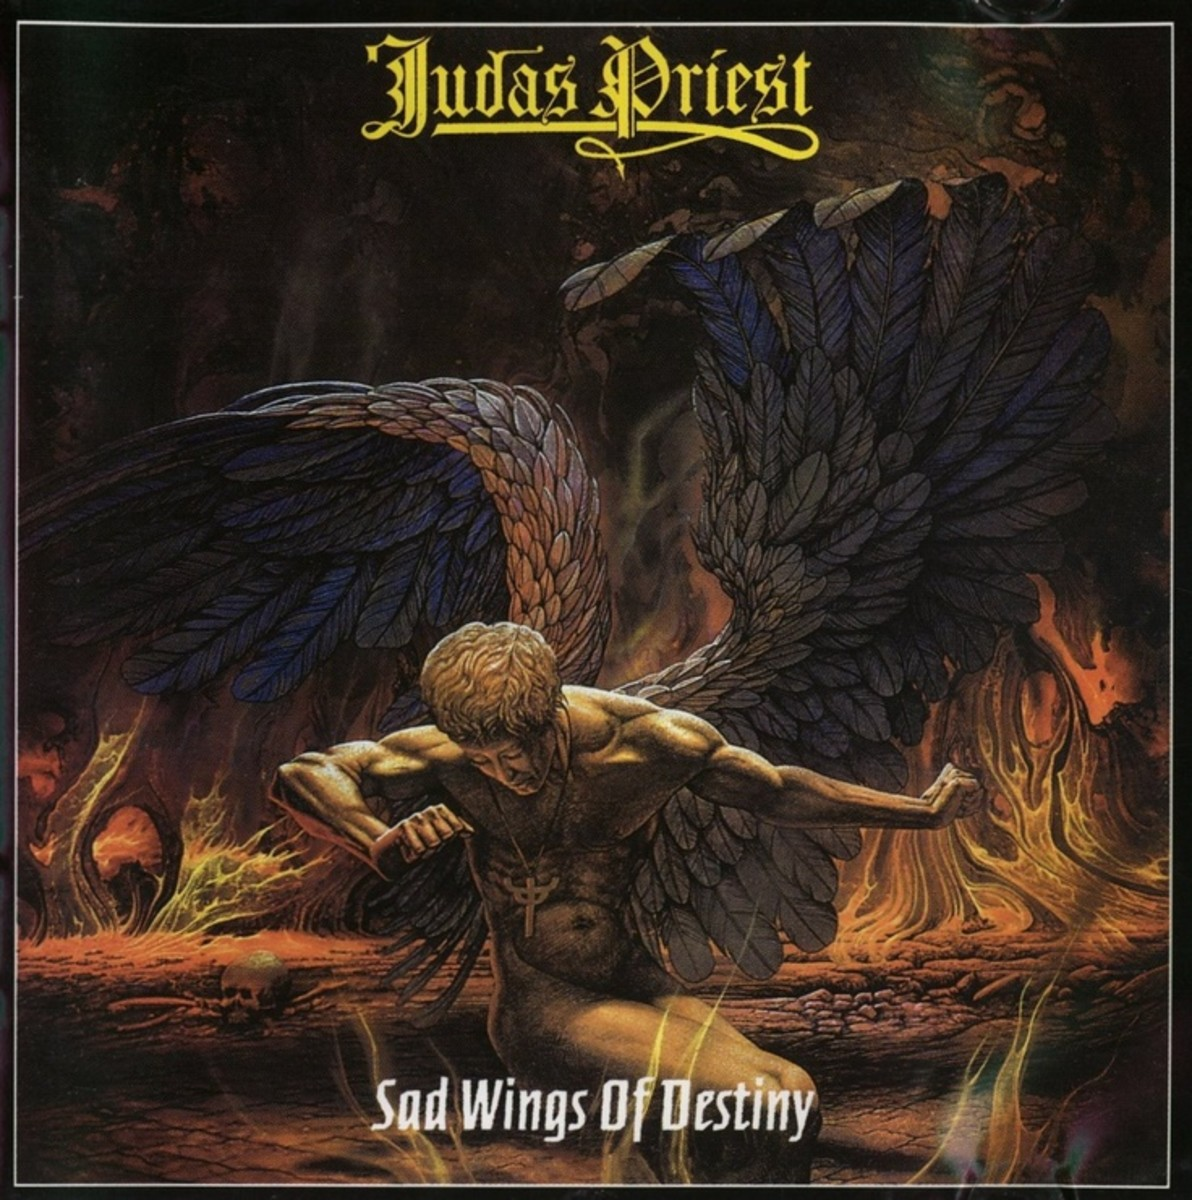 Judas Priest album cover.